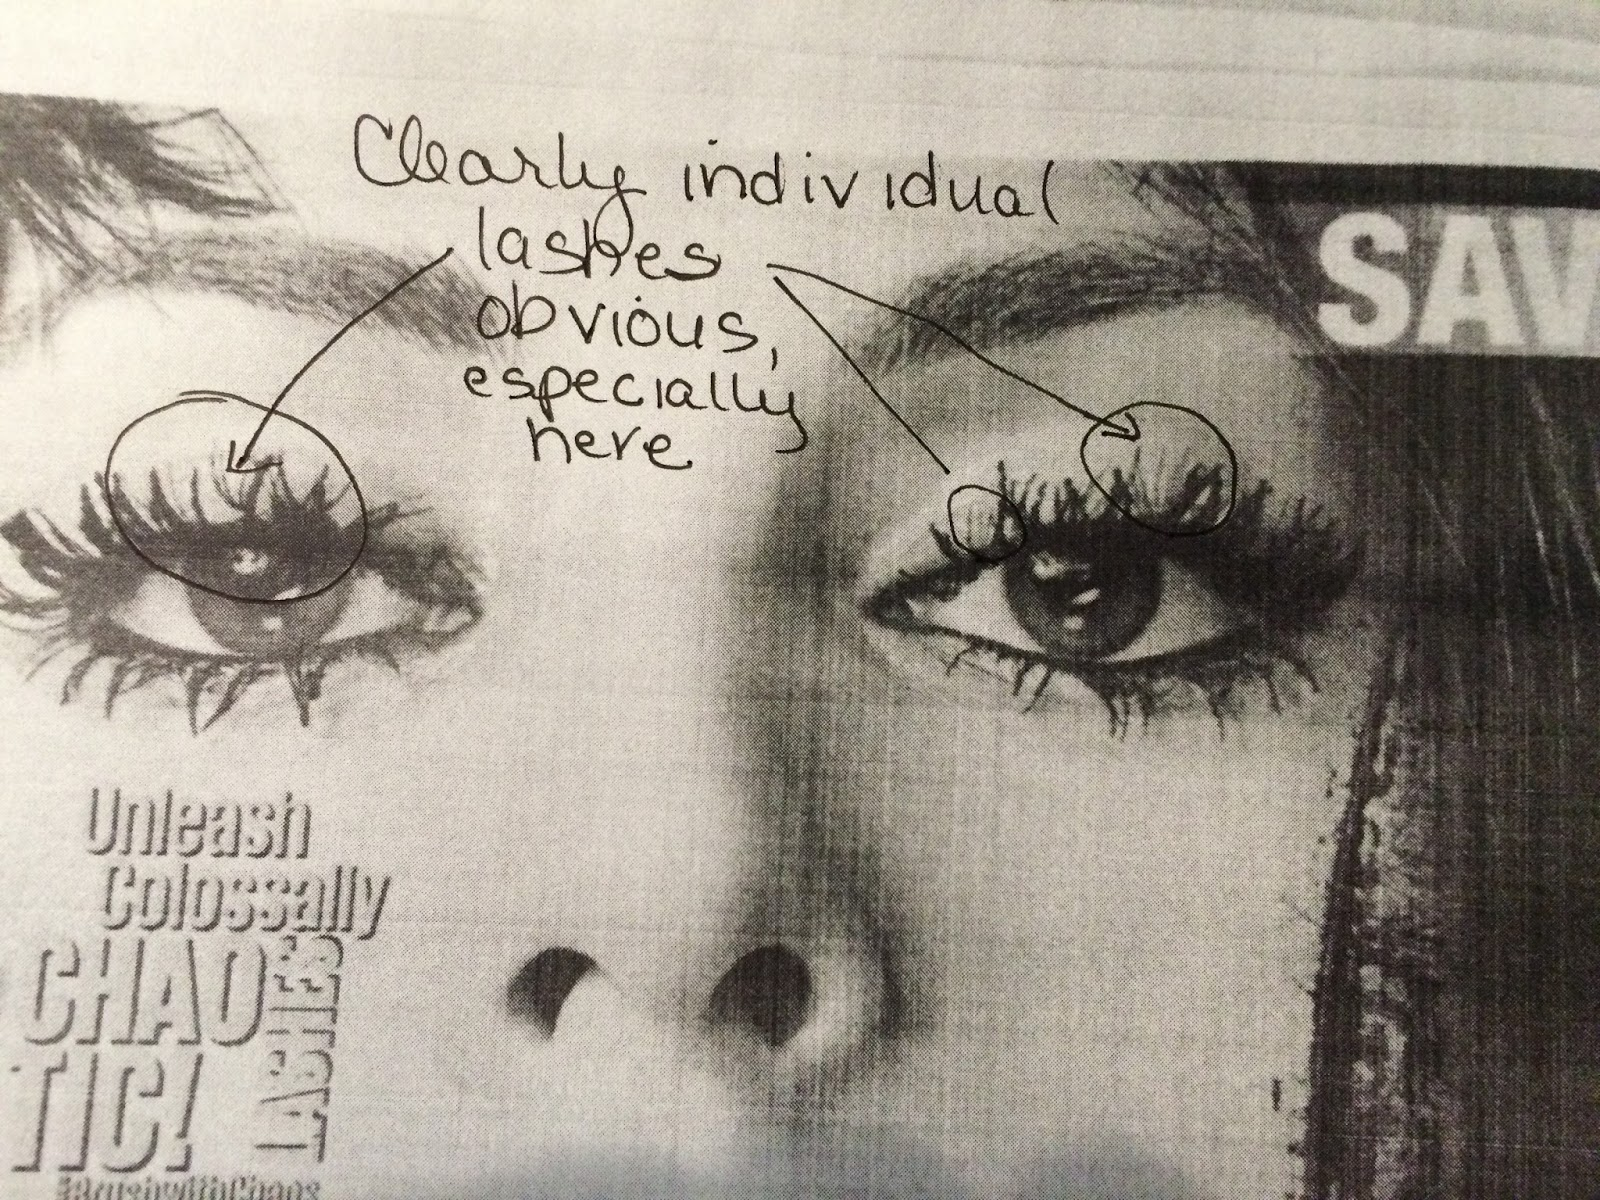 01e30136d86 How about just finding models with beautiful thick lashes and using just  that? Us mascara purchasers get it.